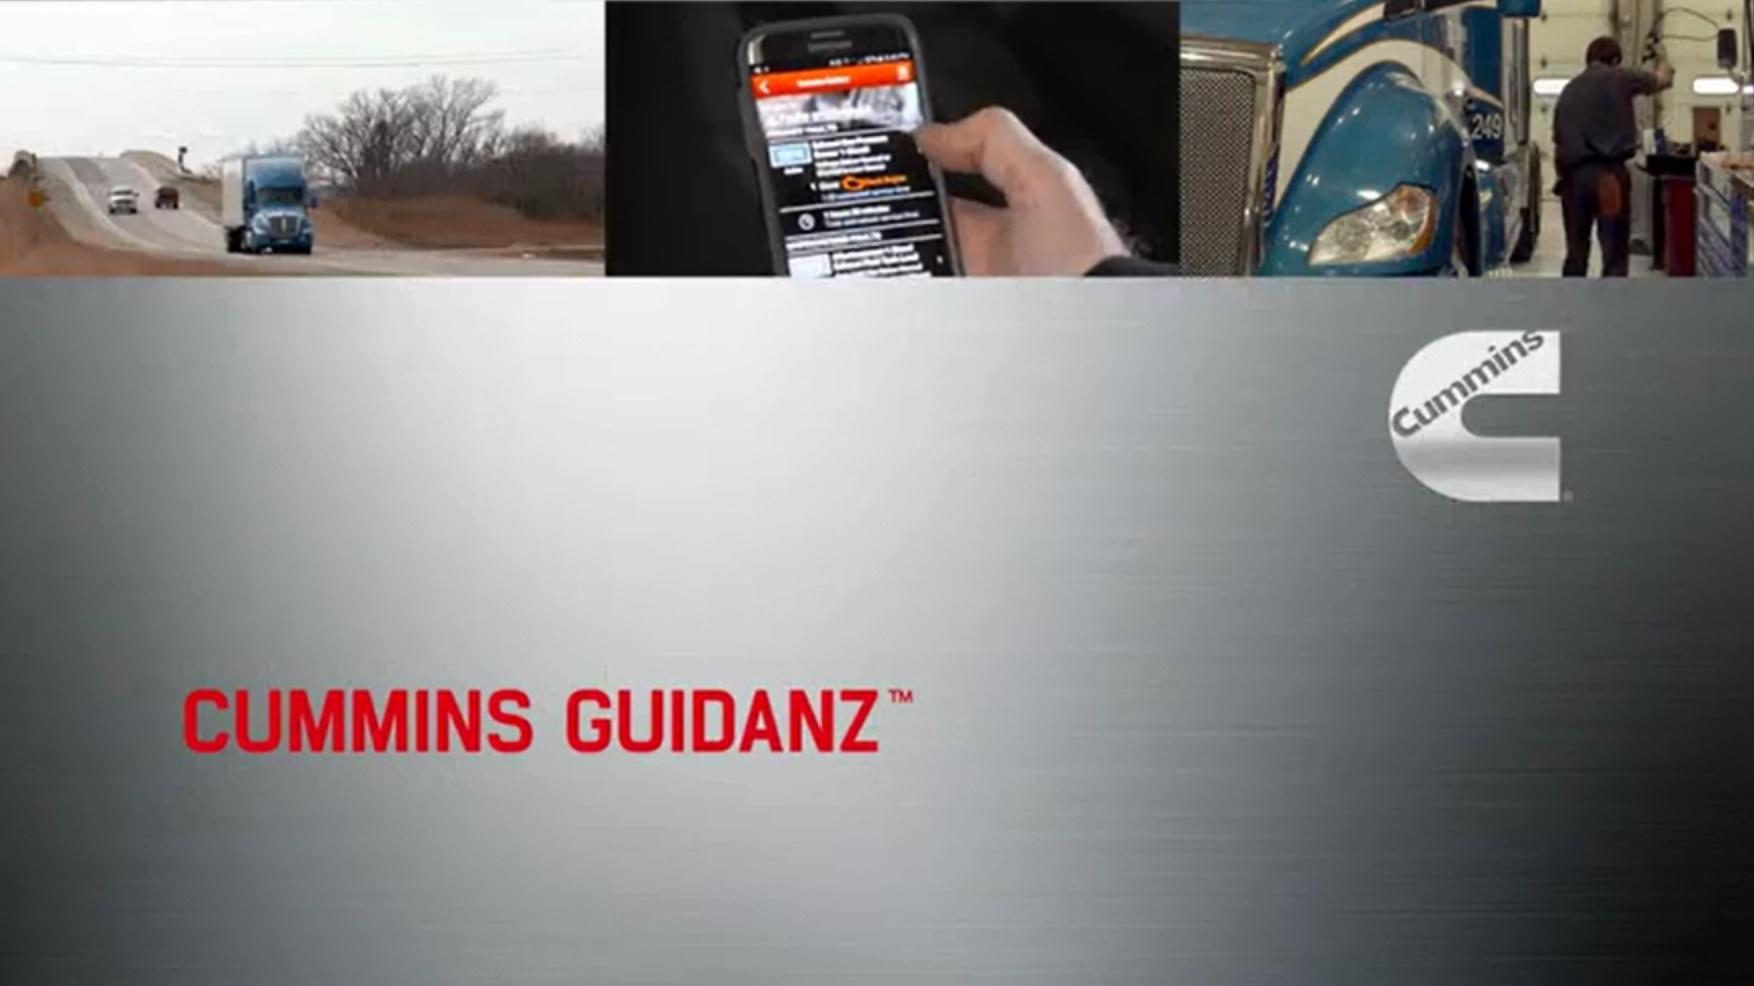 Cummins Guidanz™ Live Training for North Amer